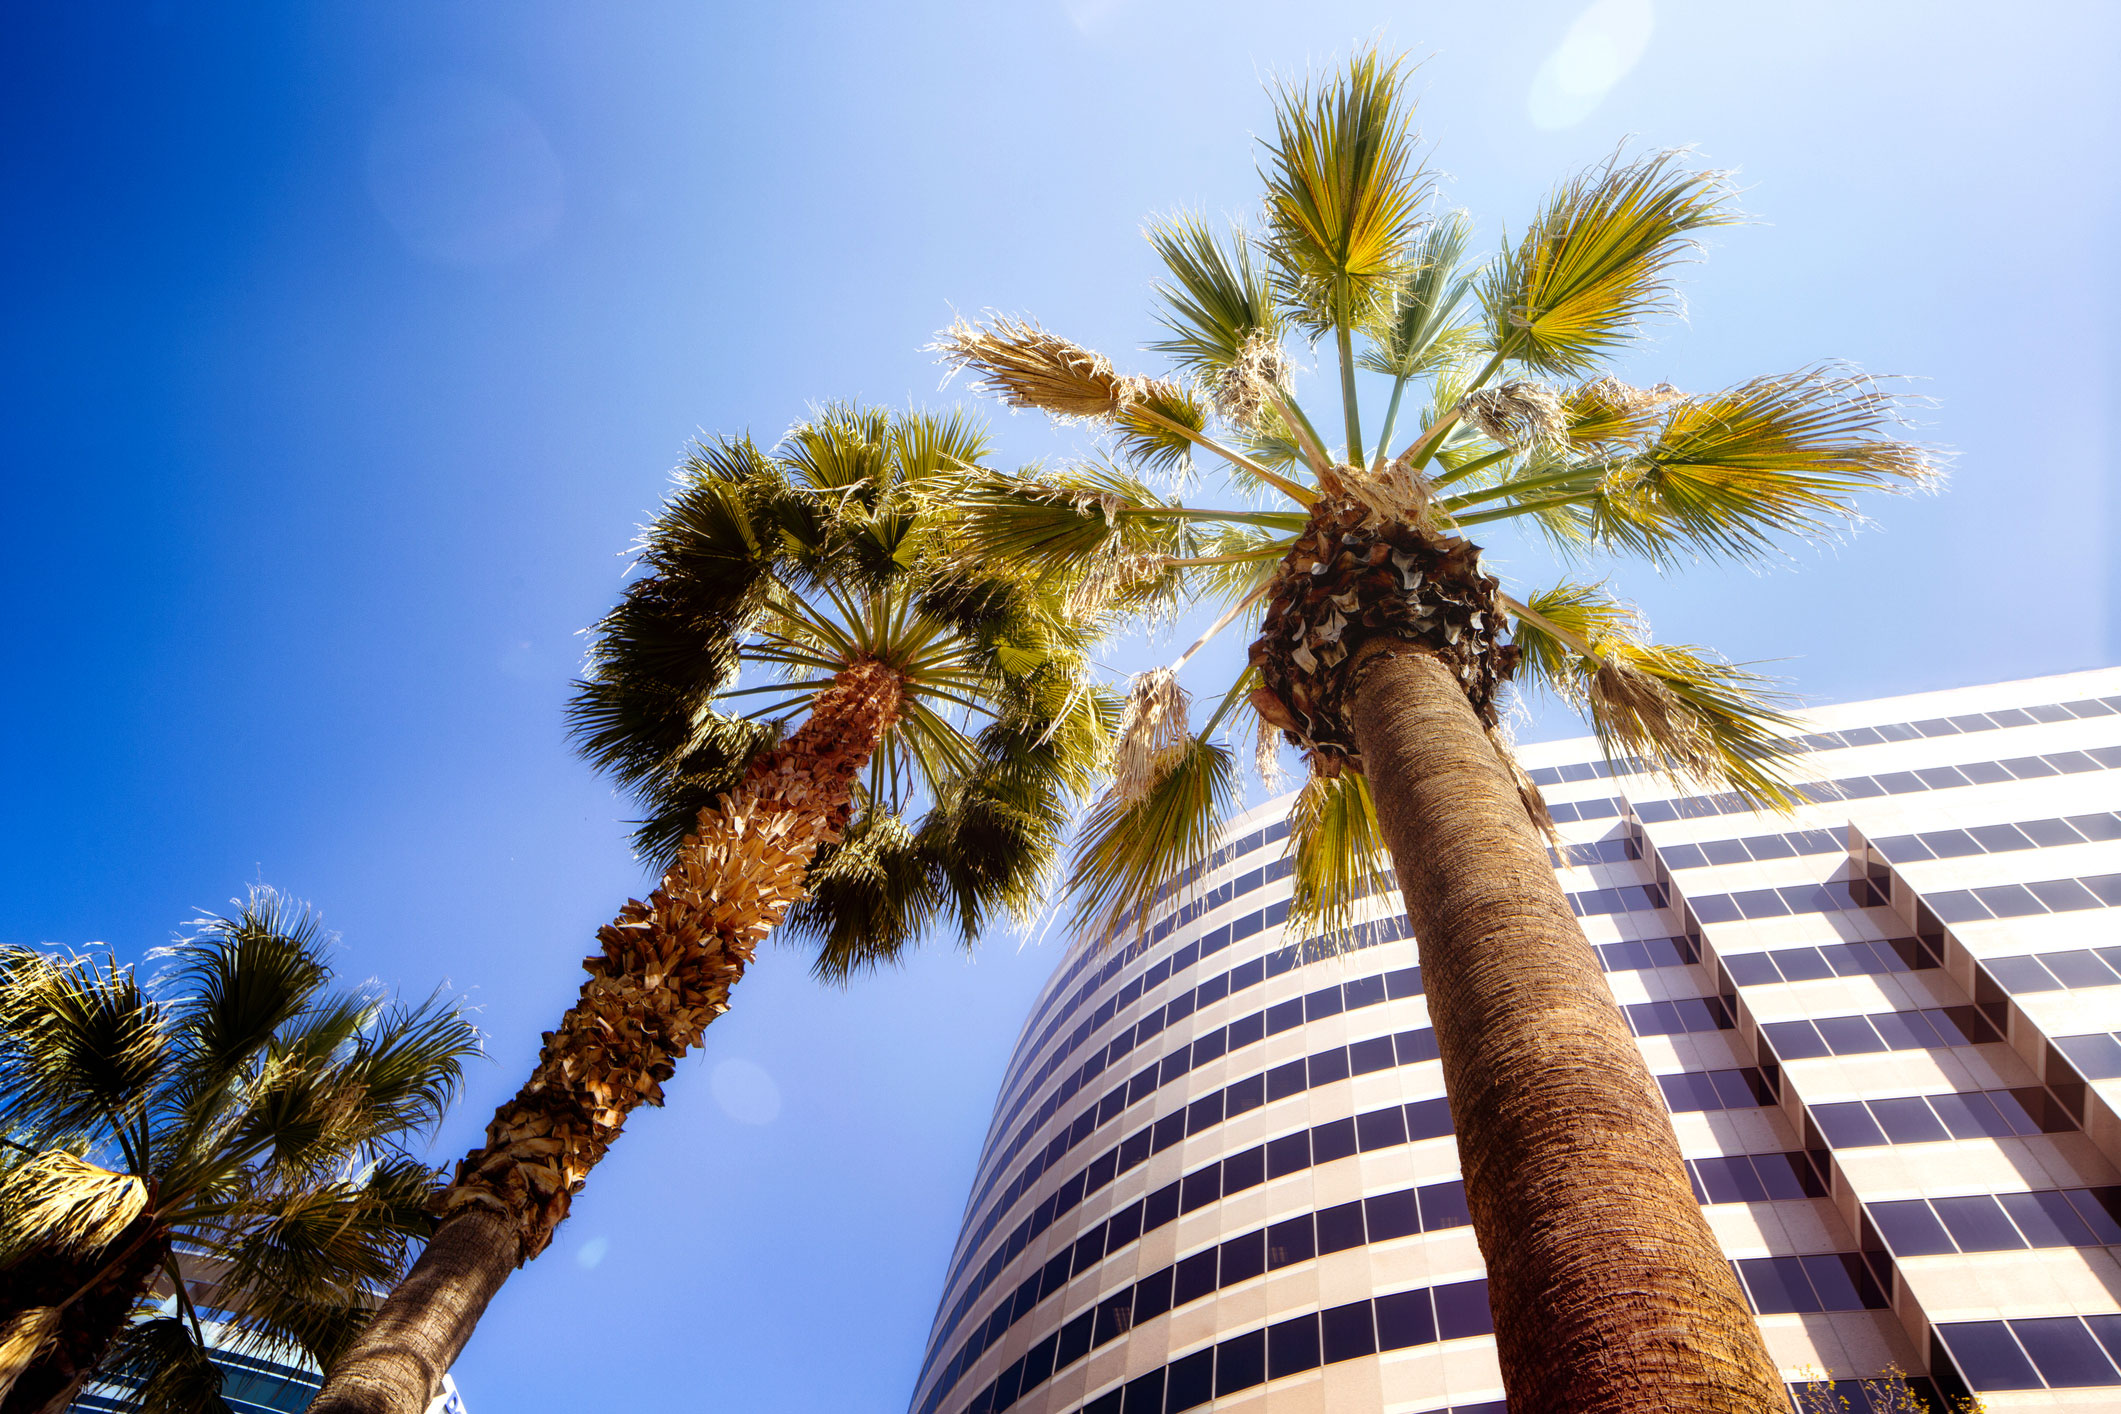 Office-tower-with-palm-trees